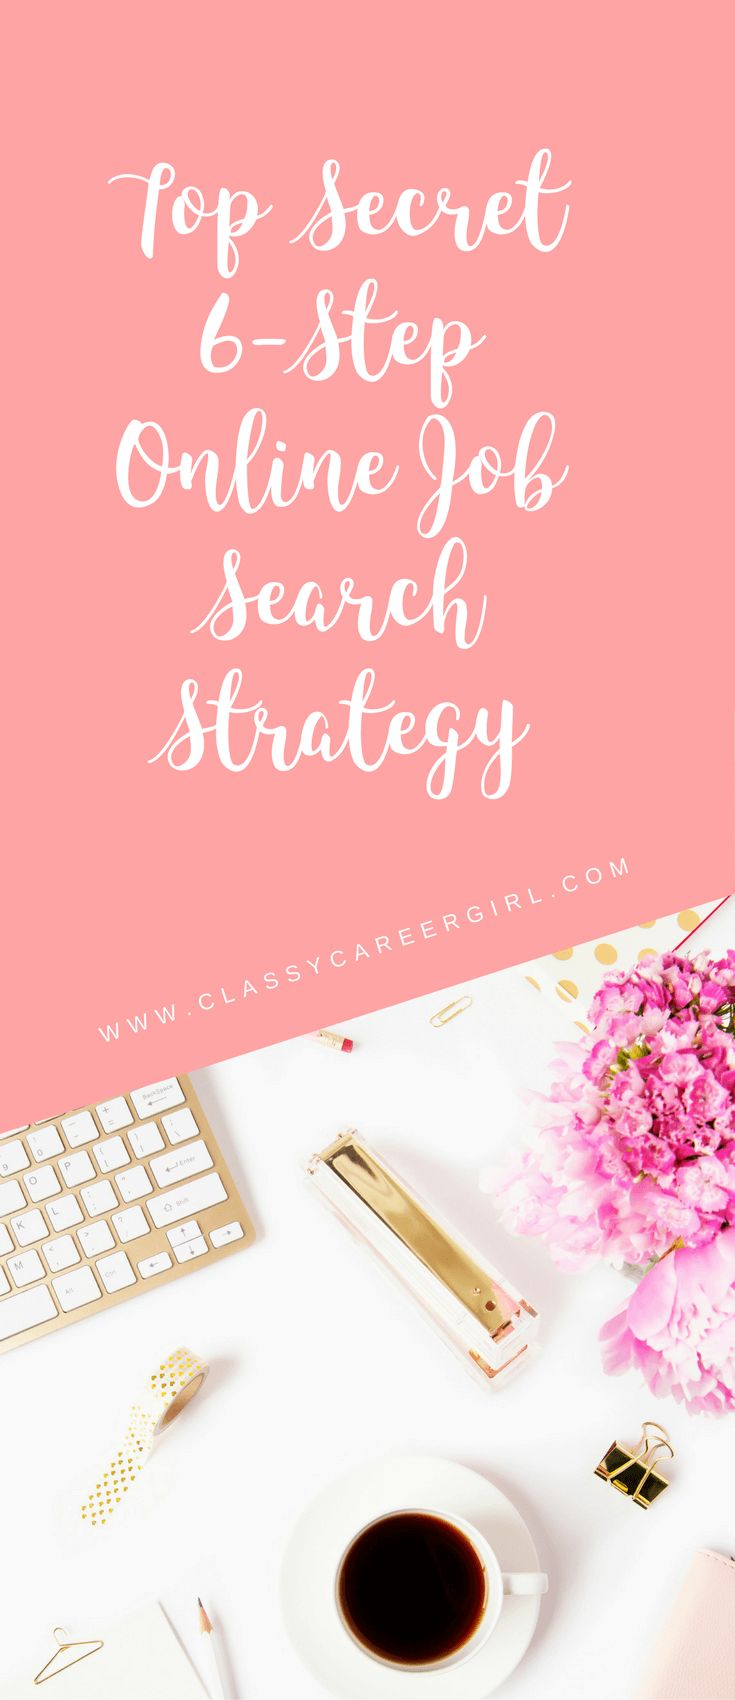 Top secret 6 step online job search strategy. | Classy Career Girl.